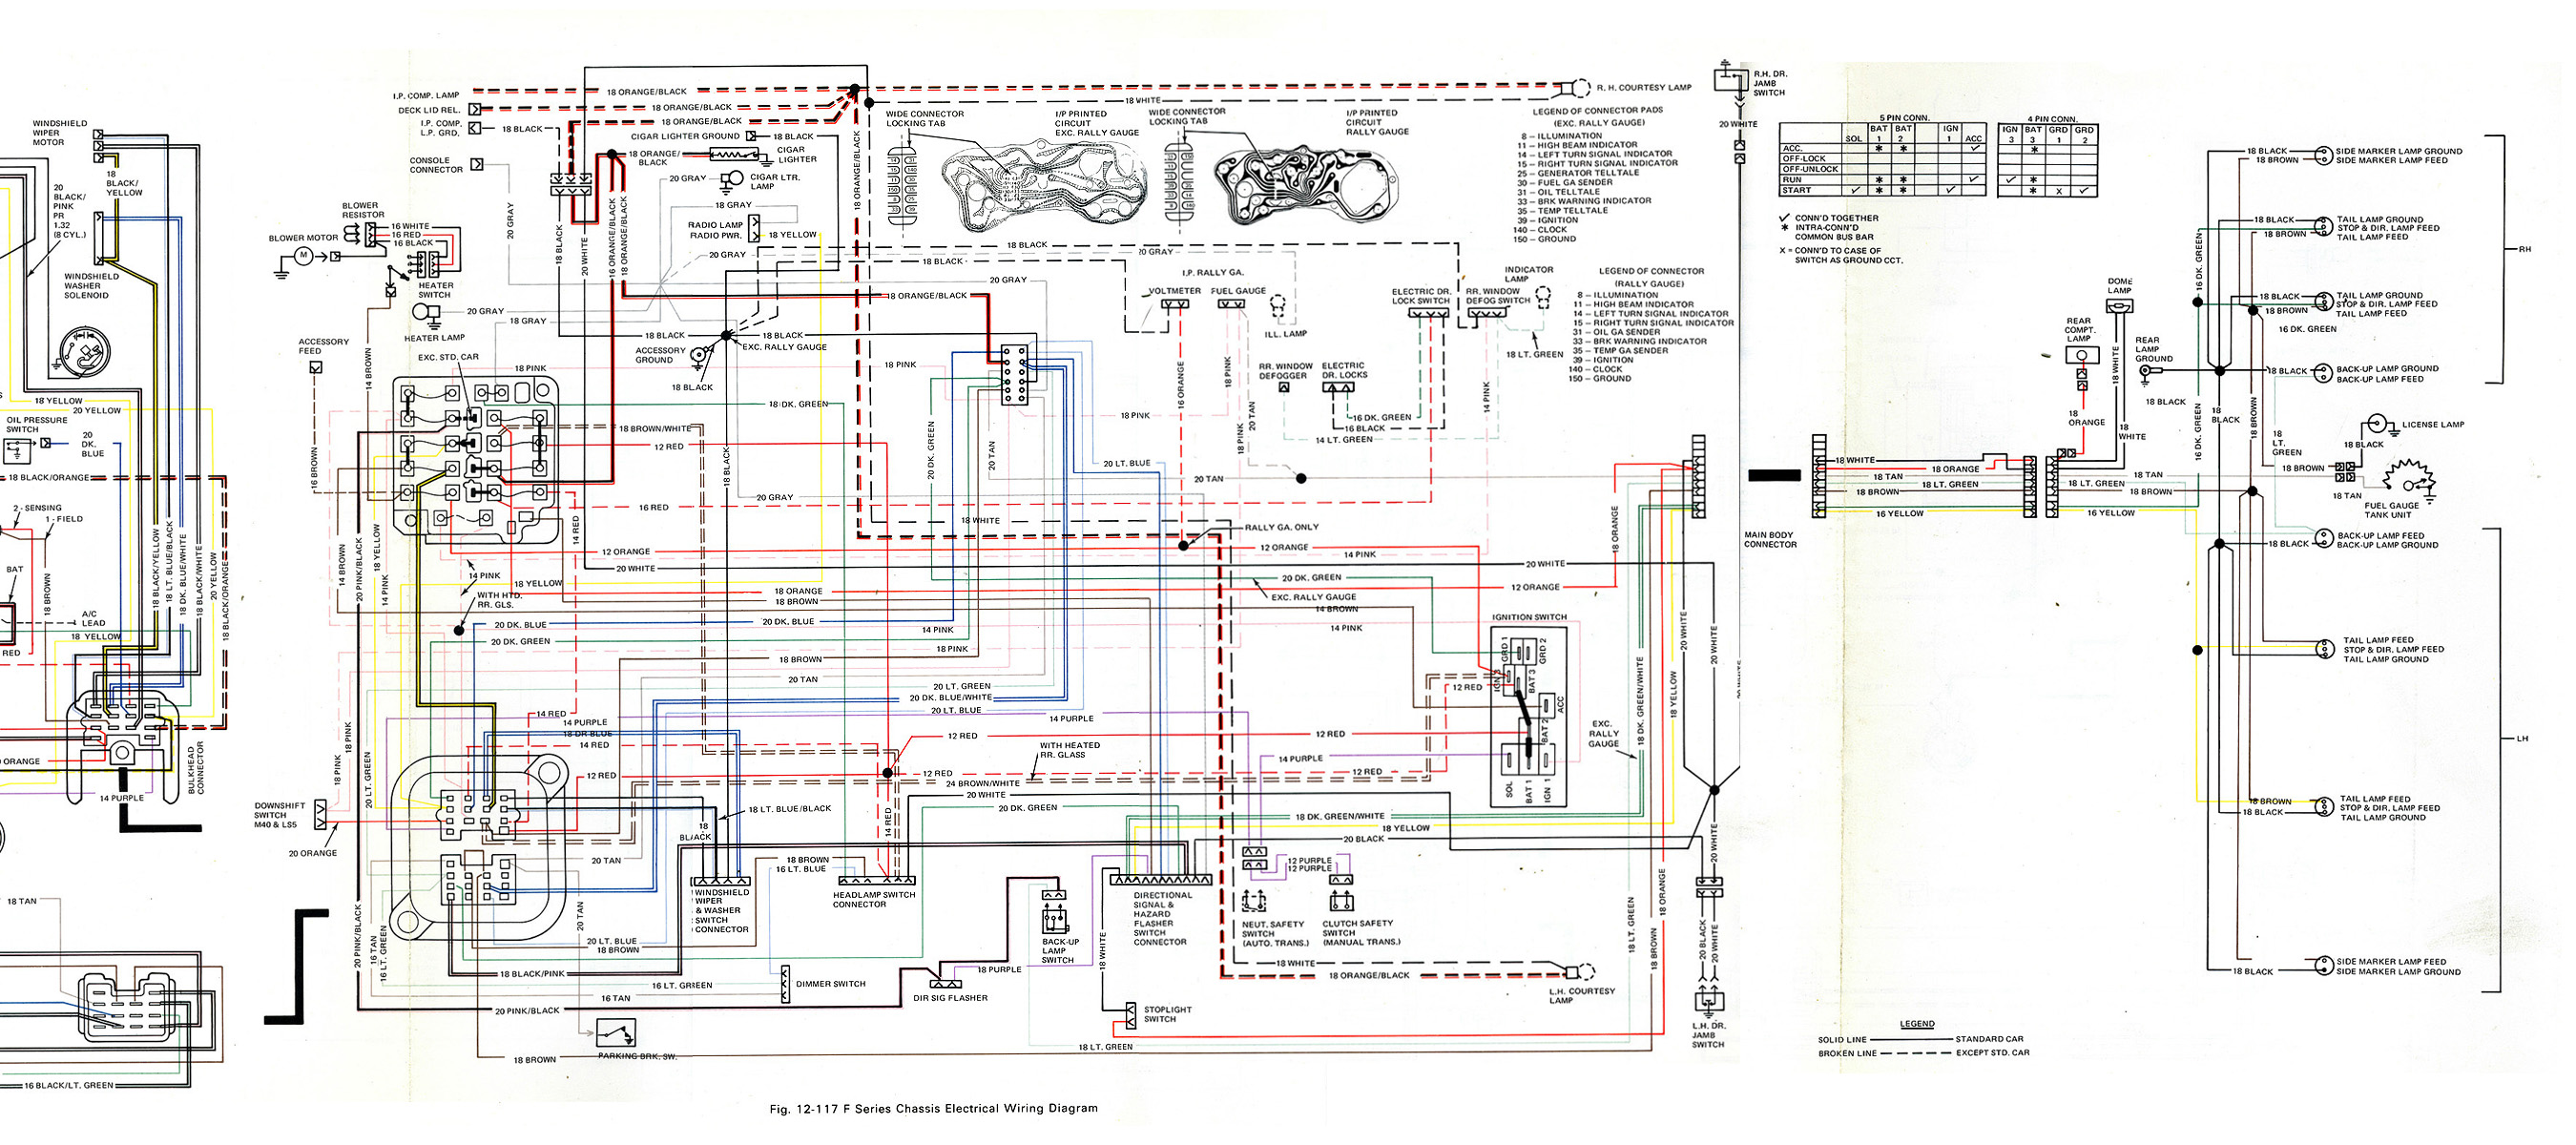 OY_8192] Pontiac Firebird Wiring Harness Get Free Image About Wiring DiagramIvoro Expe Iness Hendil Mohammedshrine Librar Wiring 101